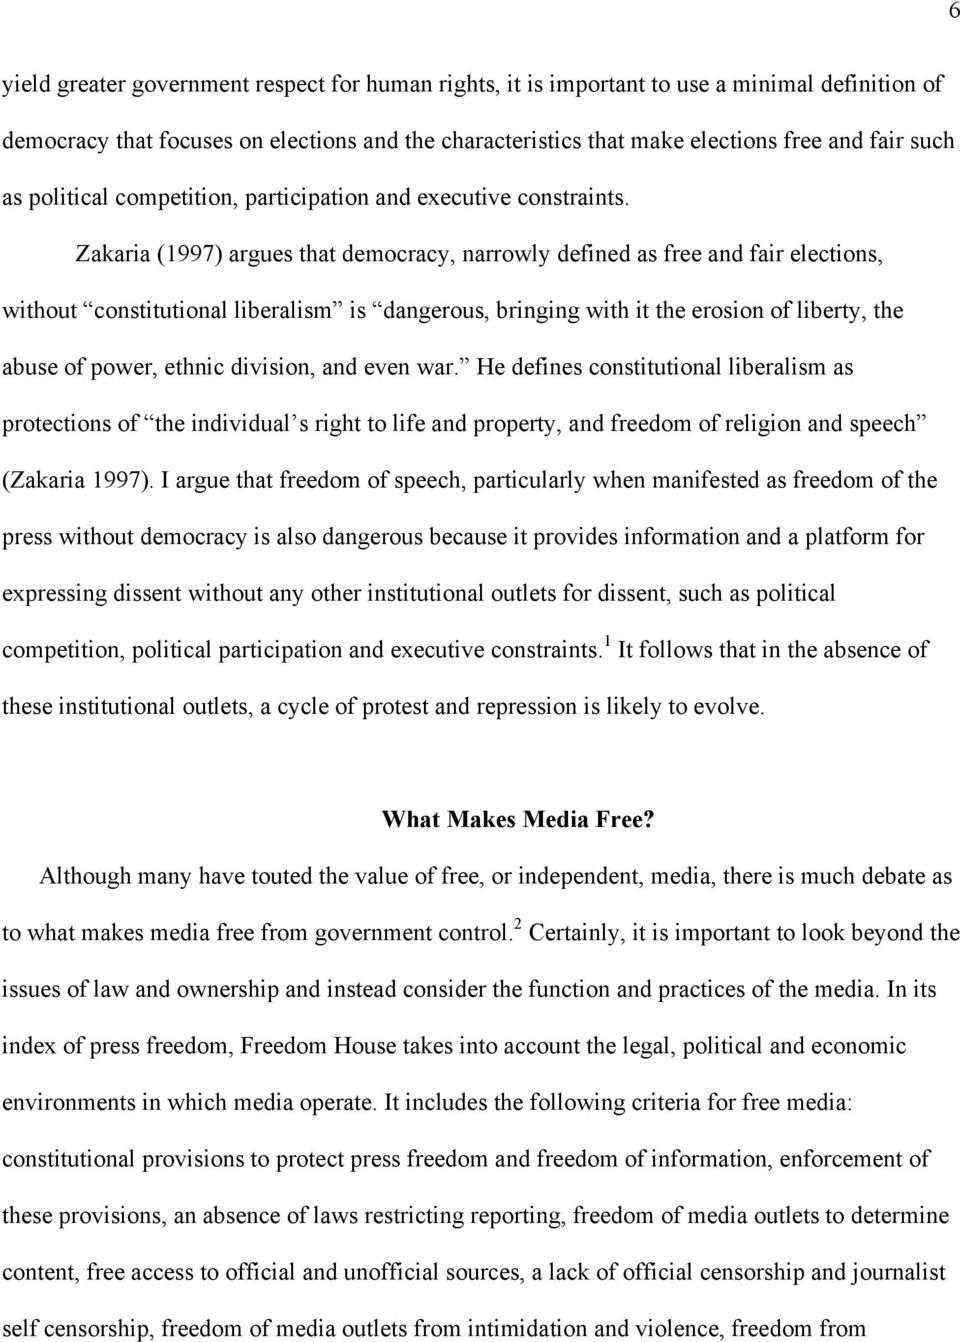 Zakaria (1997) argues that democracy, narrowly defined as free and fair elections, without constitutional liberalism is dangerous, bringing with it the erosion of liberty, the abuse of power, ethnic